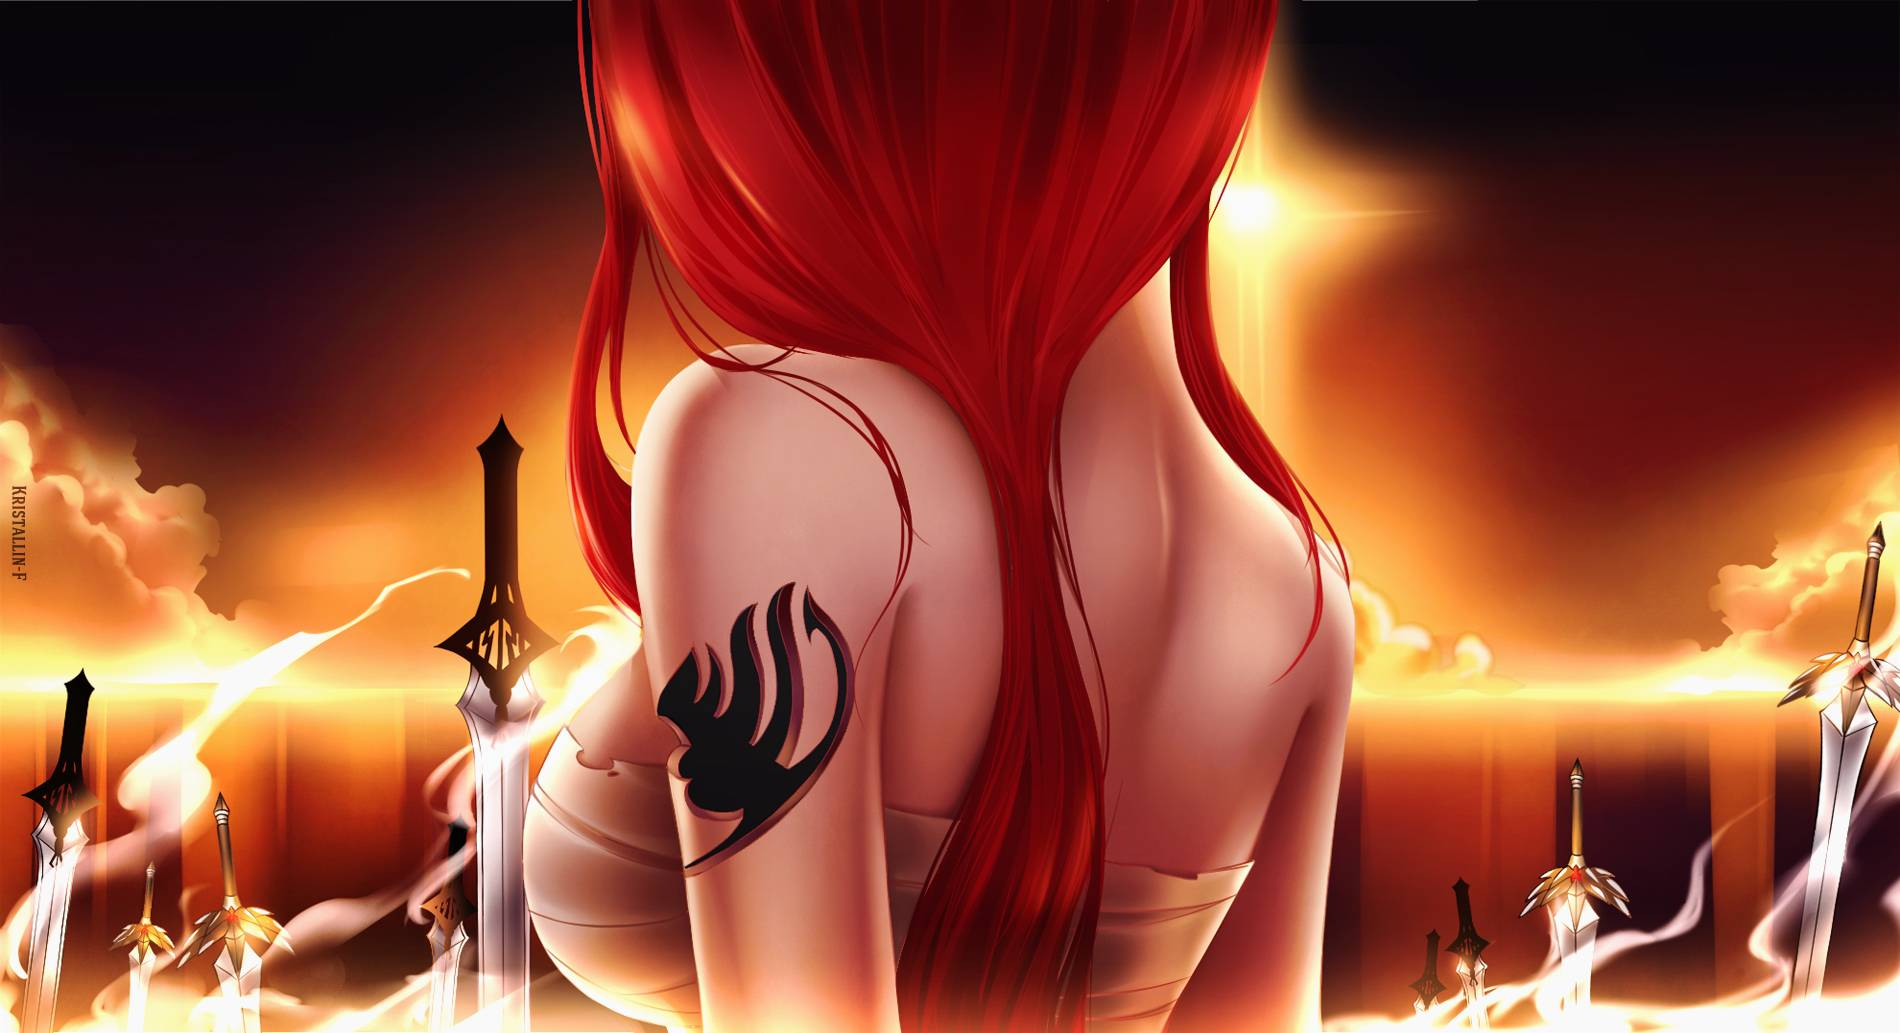 screenshots stuffpoint fairy tail images wallpapers erza scarlet tweet 1900x1033